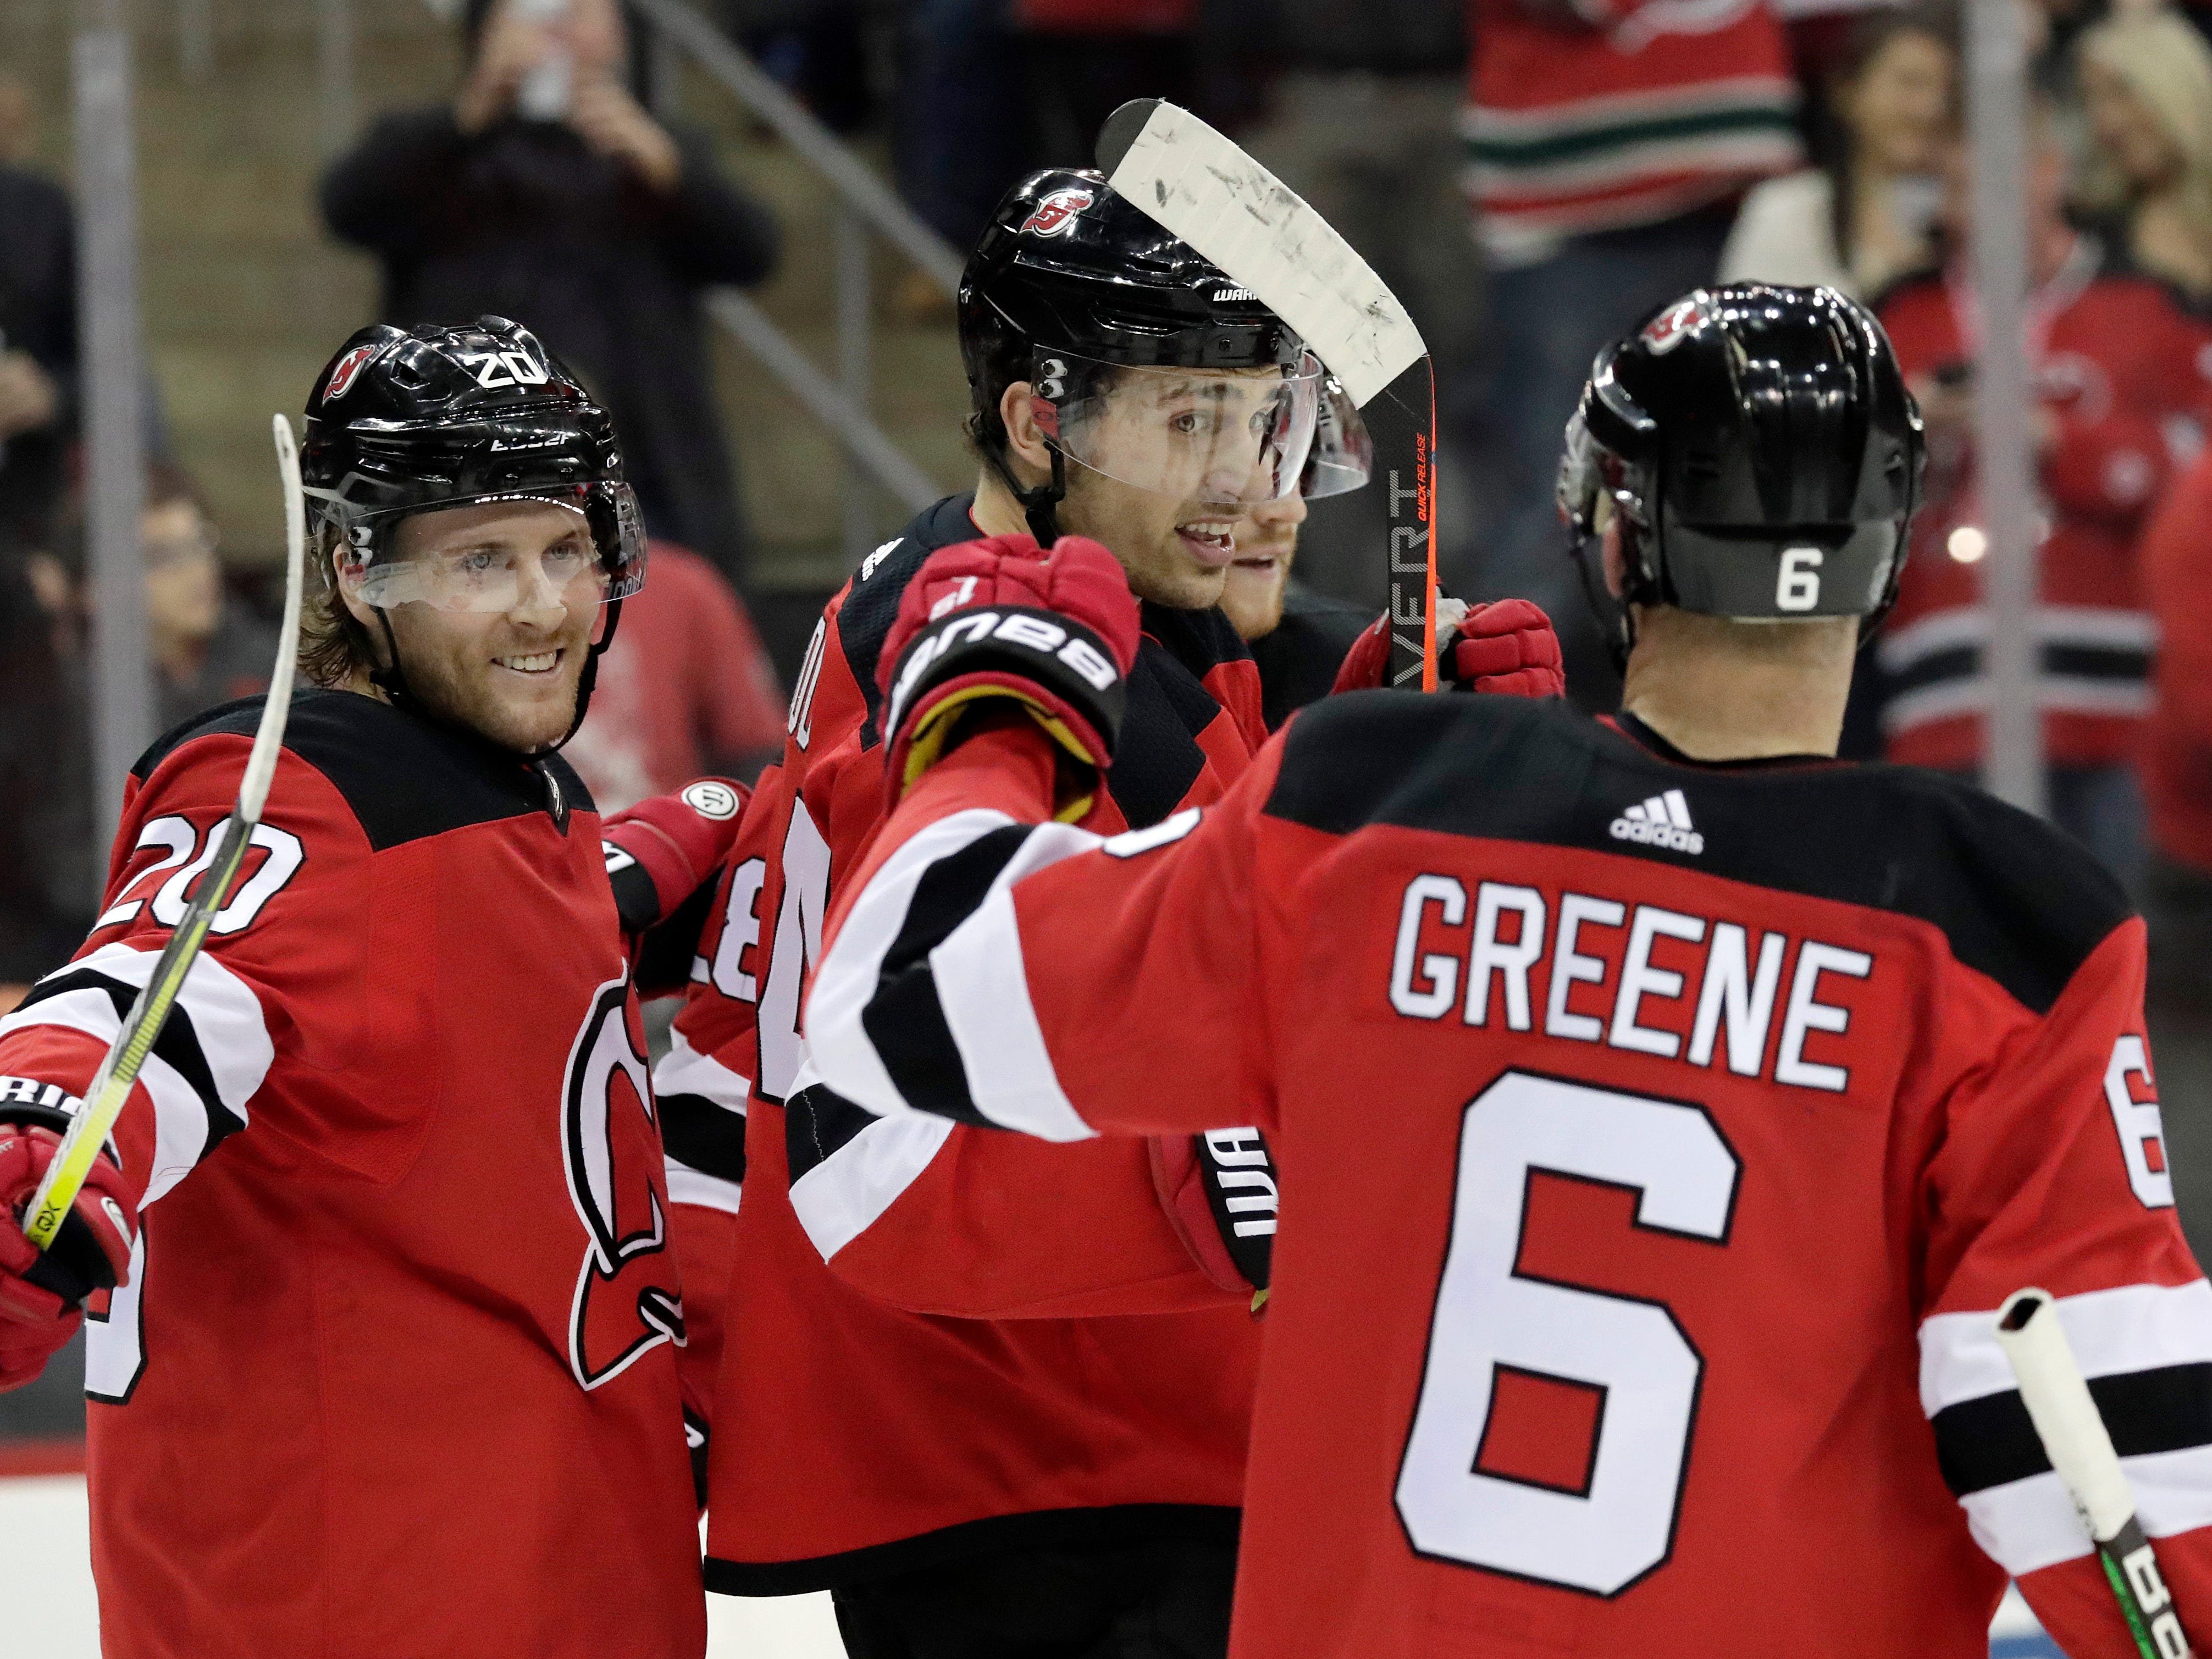 New Jersey Devils left wing Miles Wood, center, celebrates with teammates Blake Coleman (20) and Andy Greene (6) after scoring a goal against the Ottawa Senators during the second period of an NHL hockey game, Thursday, Feb. 21, 2019, in Newark, N.J.